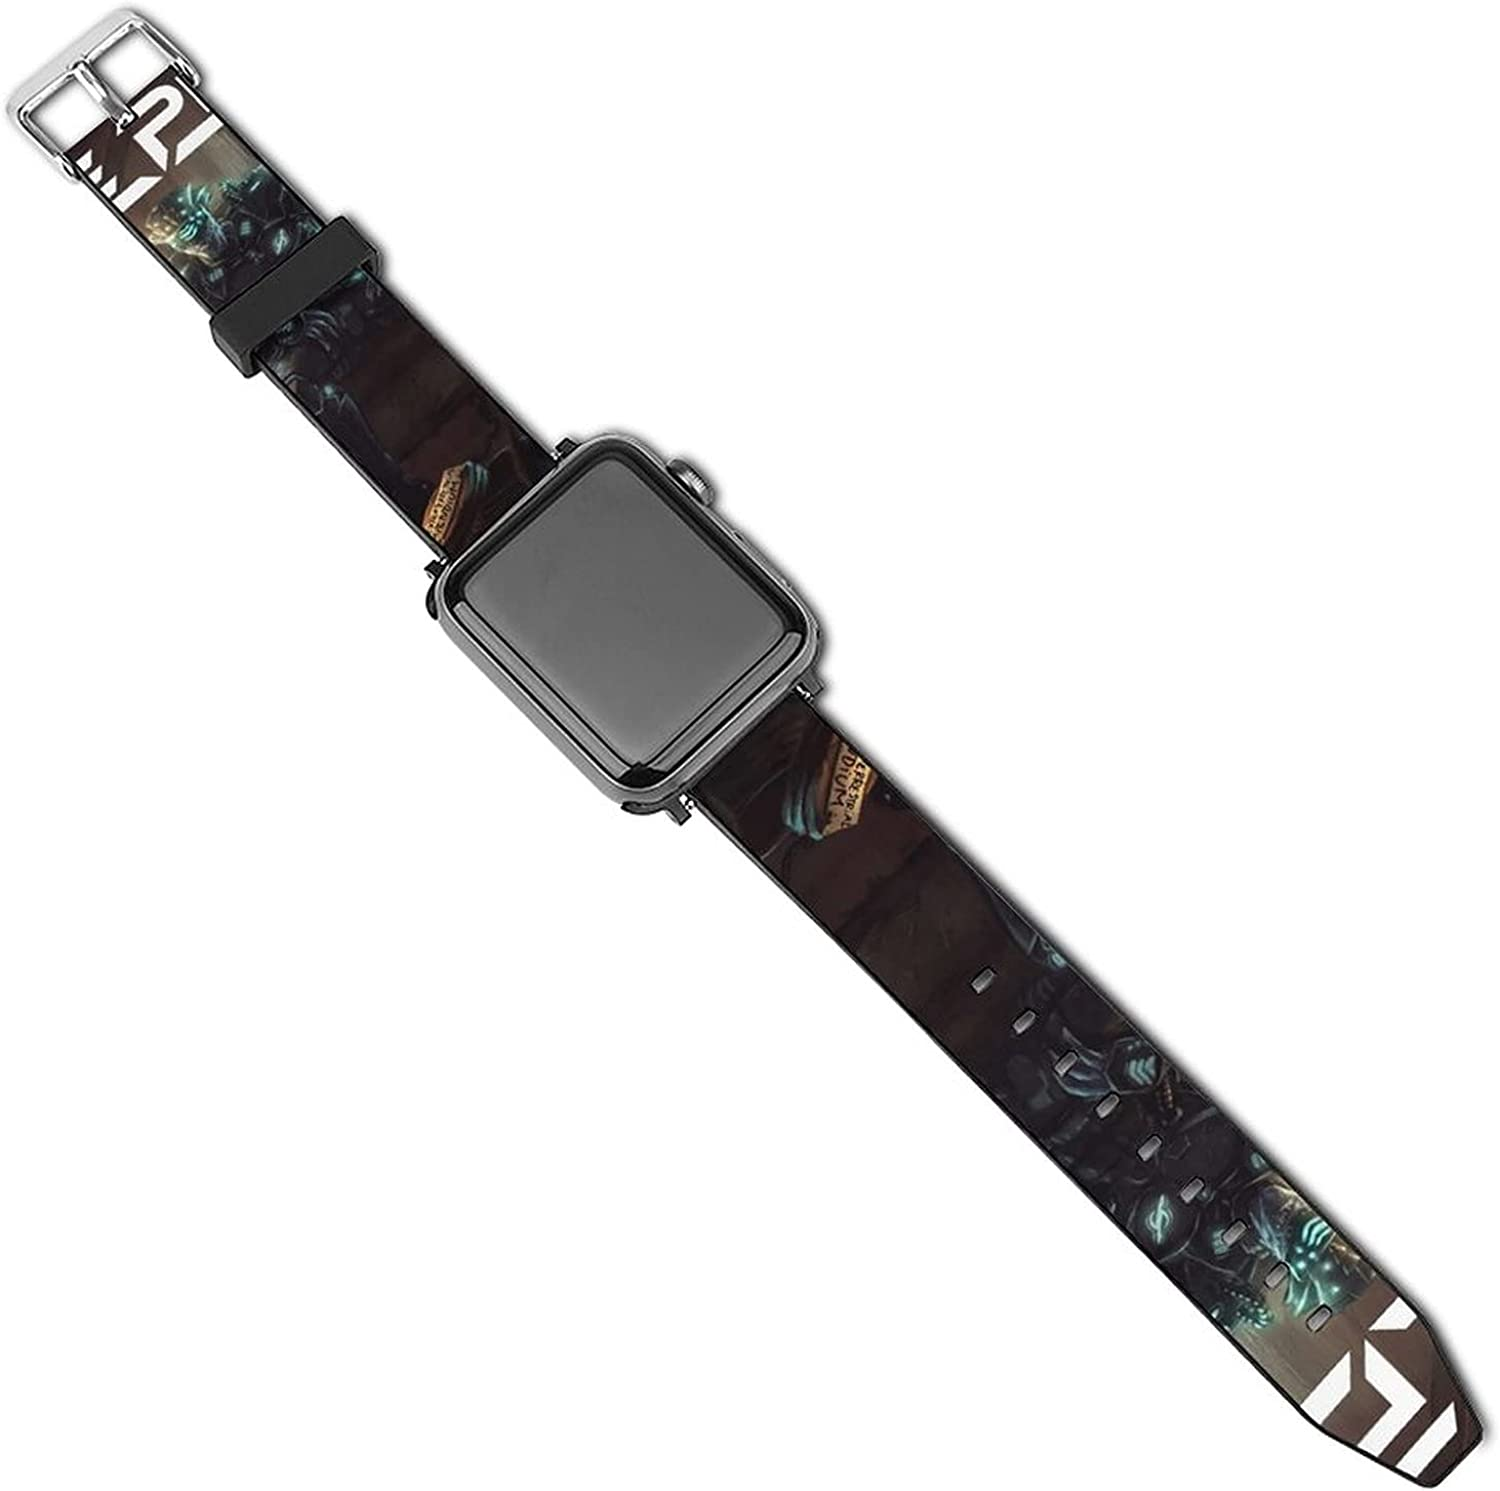 Unleash The Archers The Strap Is Compatible With Apple Watch Strap Series 5/4/3/2/1, With Stainless Steel Buckle. Replacement Strap Wrist Strap Lady